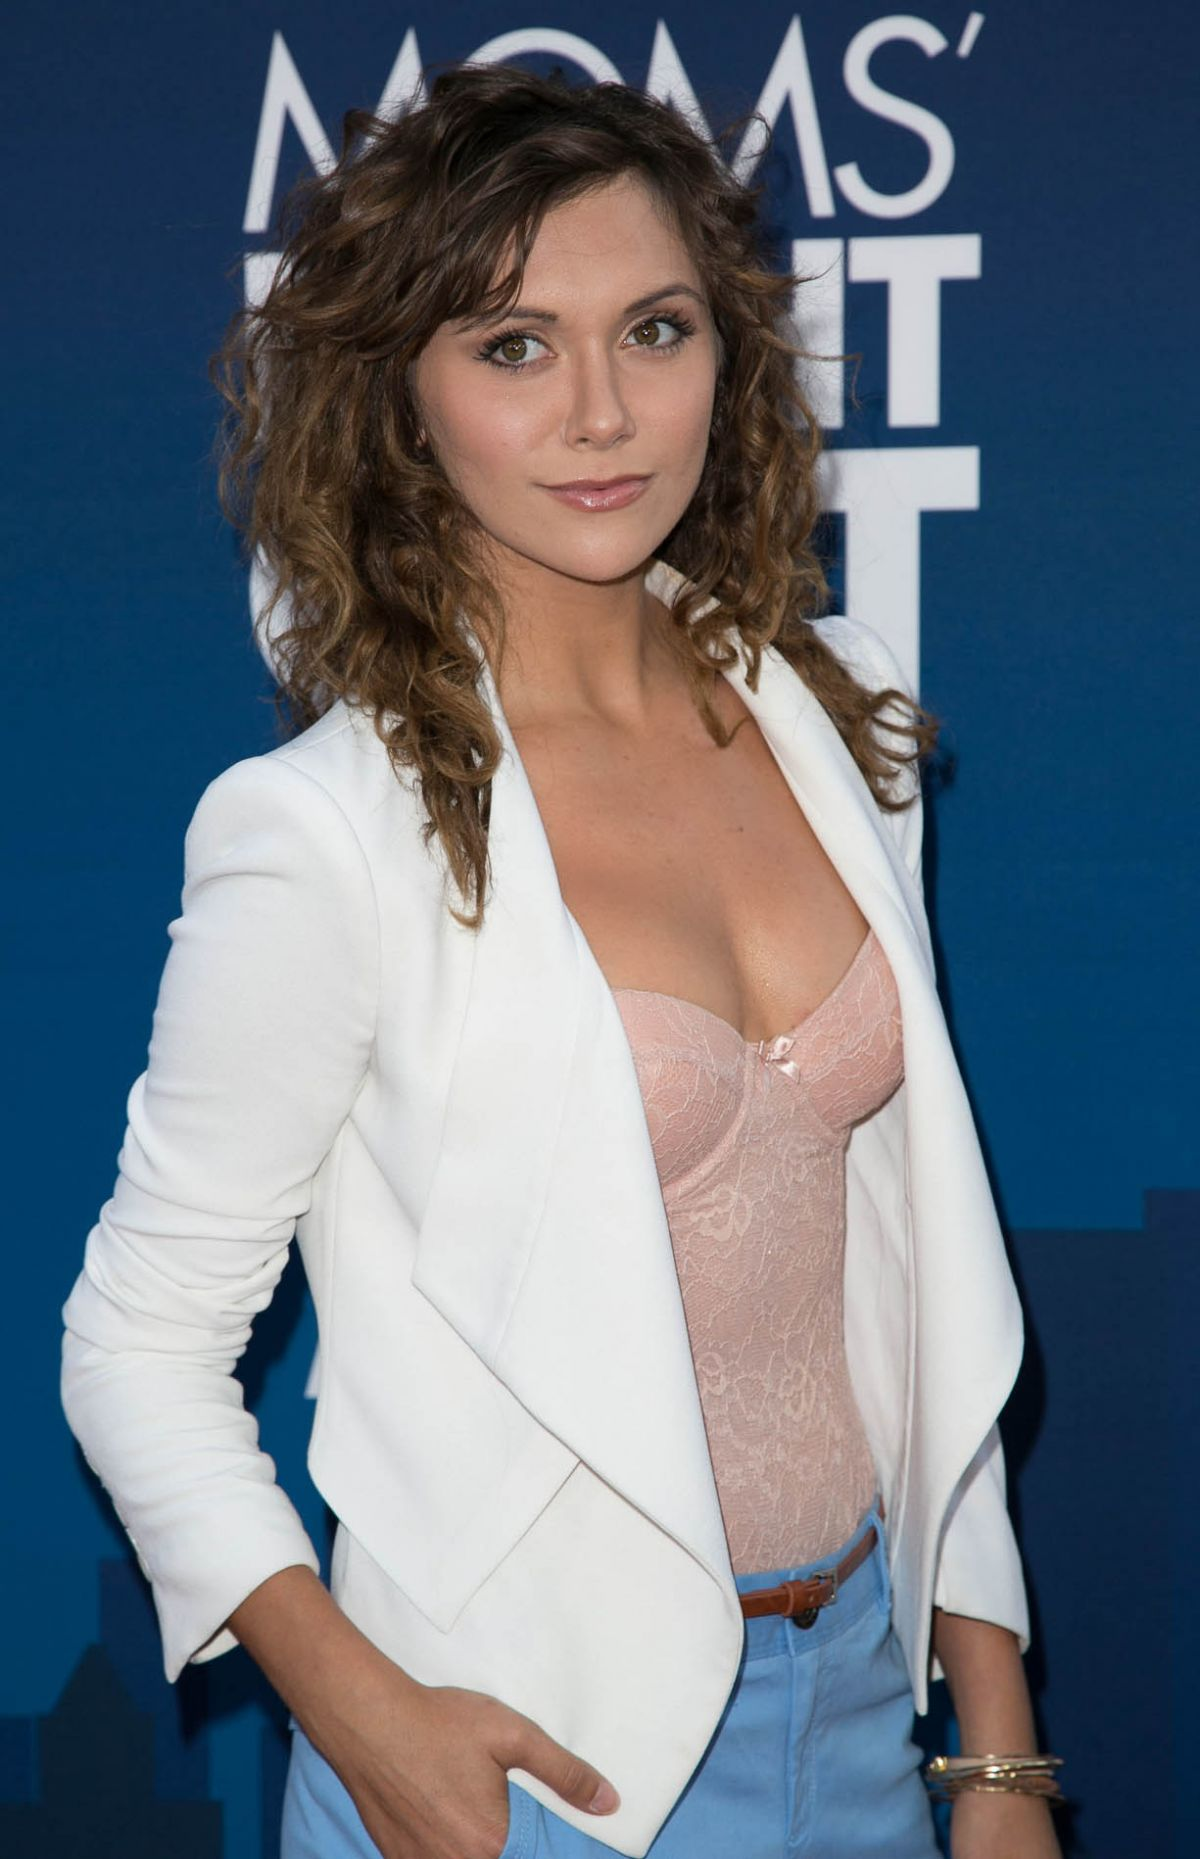 Alyson stoner bikini photos